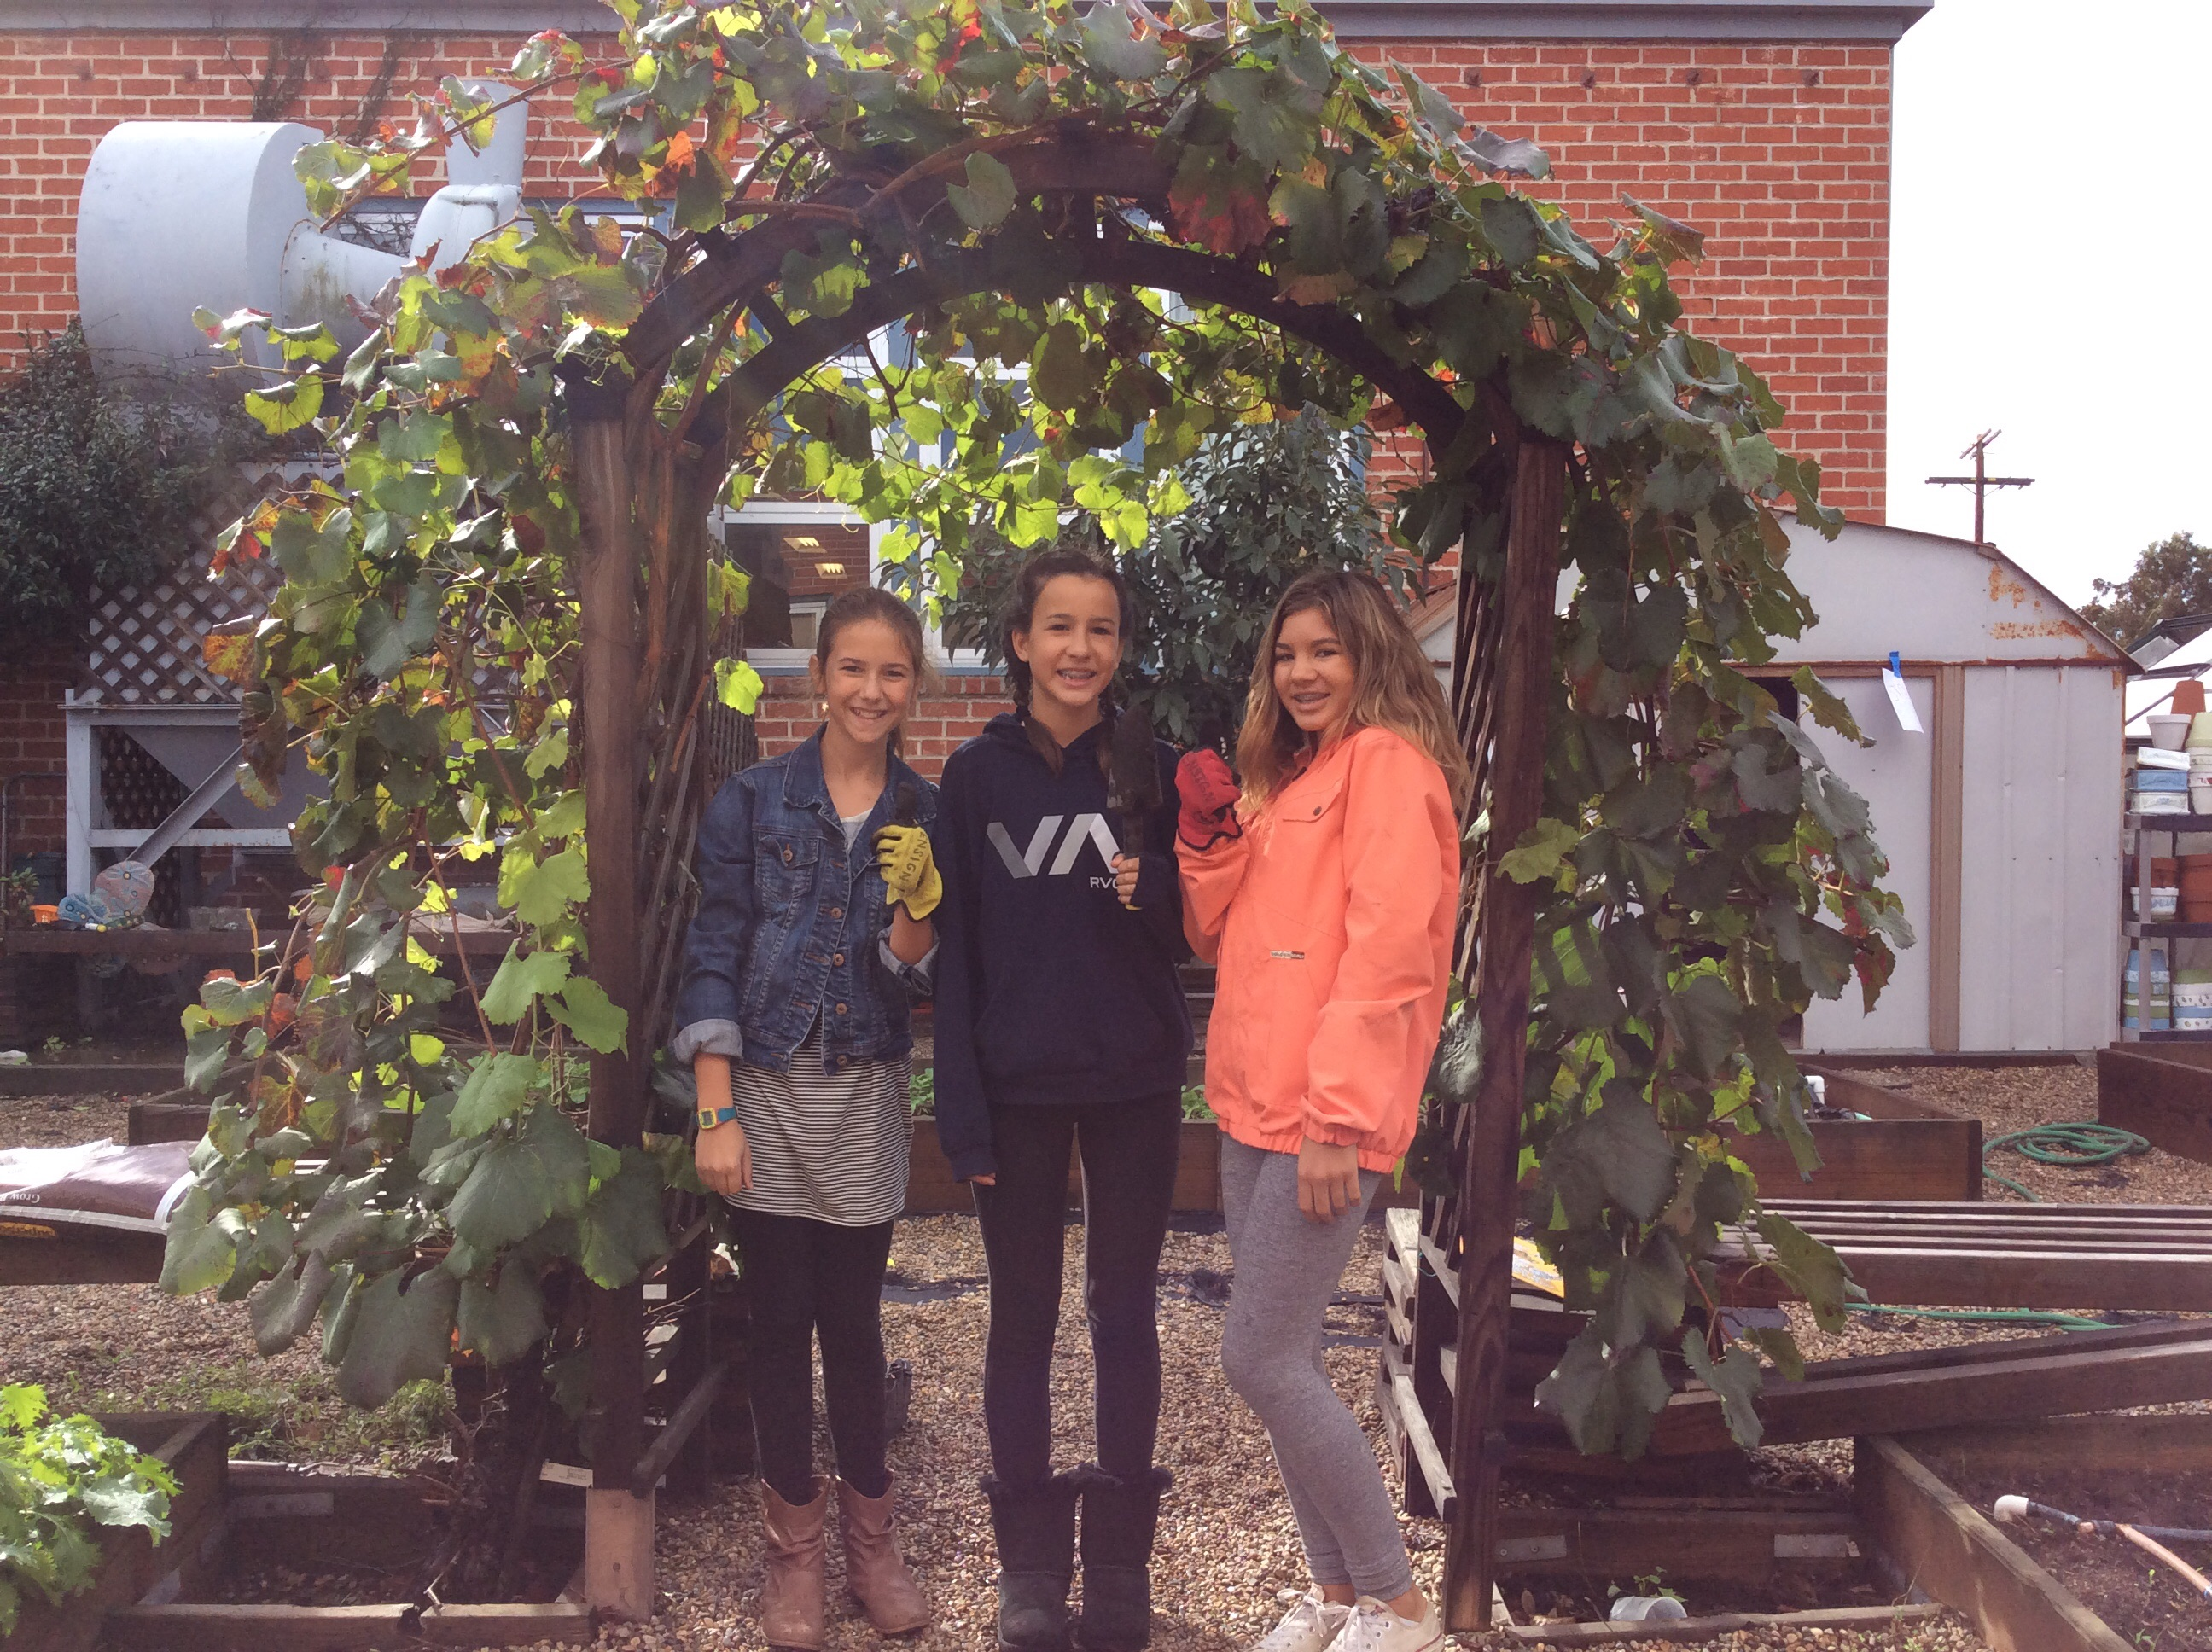 Students under an arch in the garden